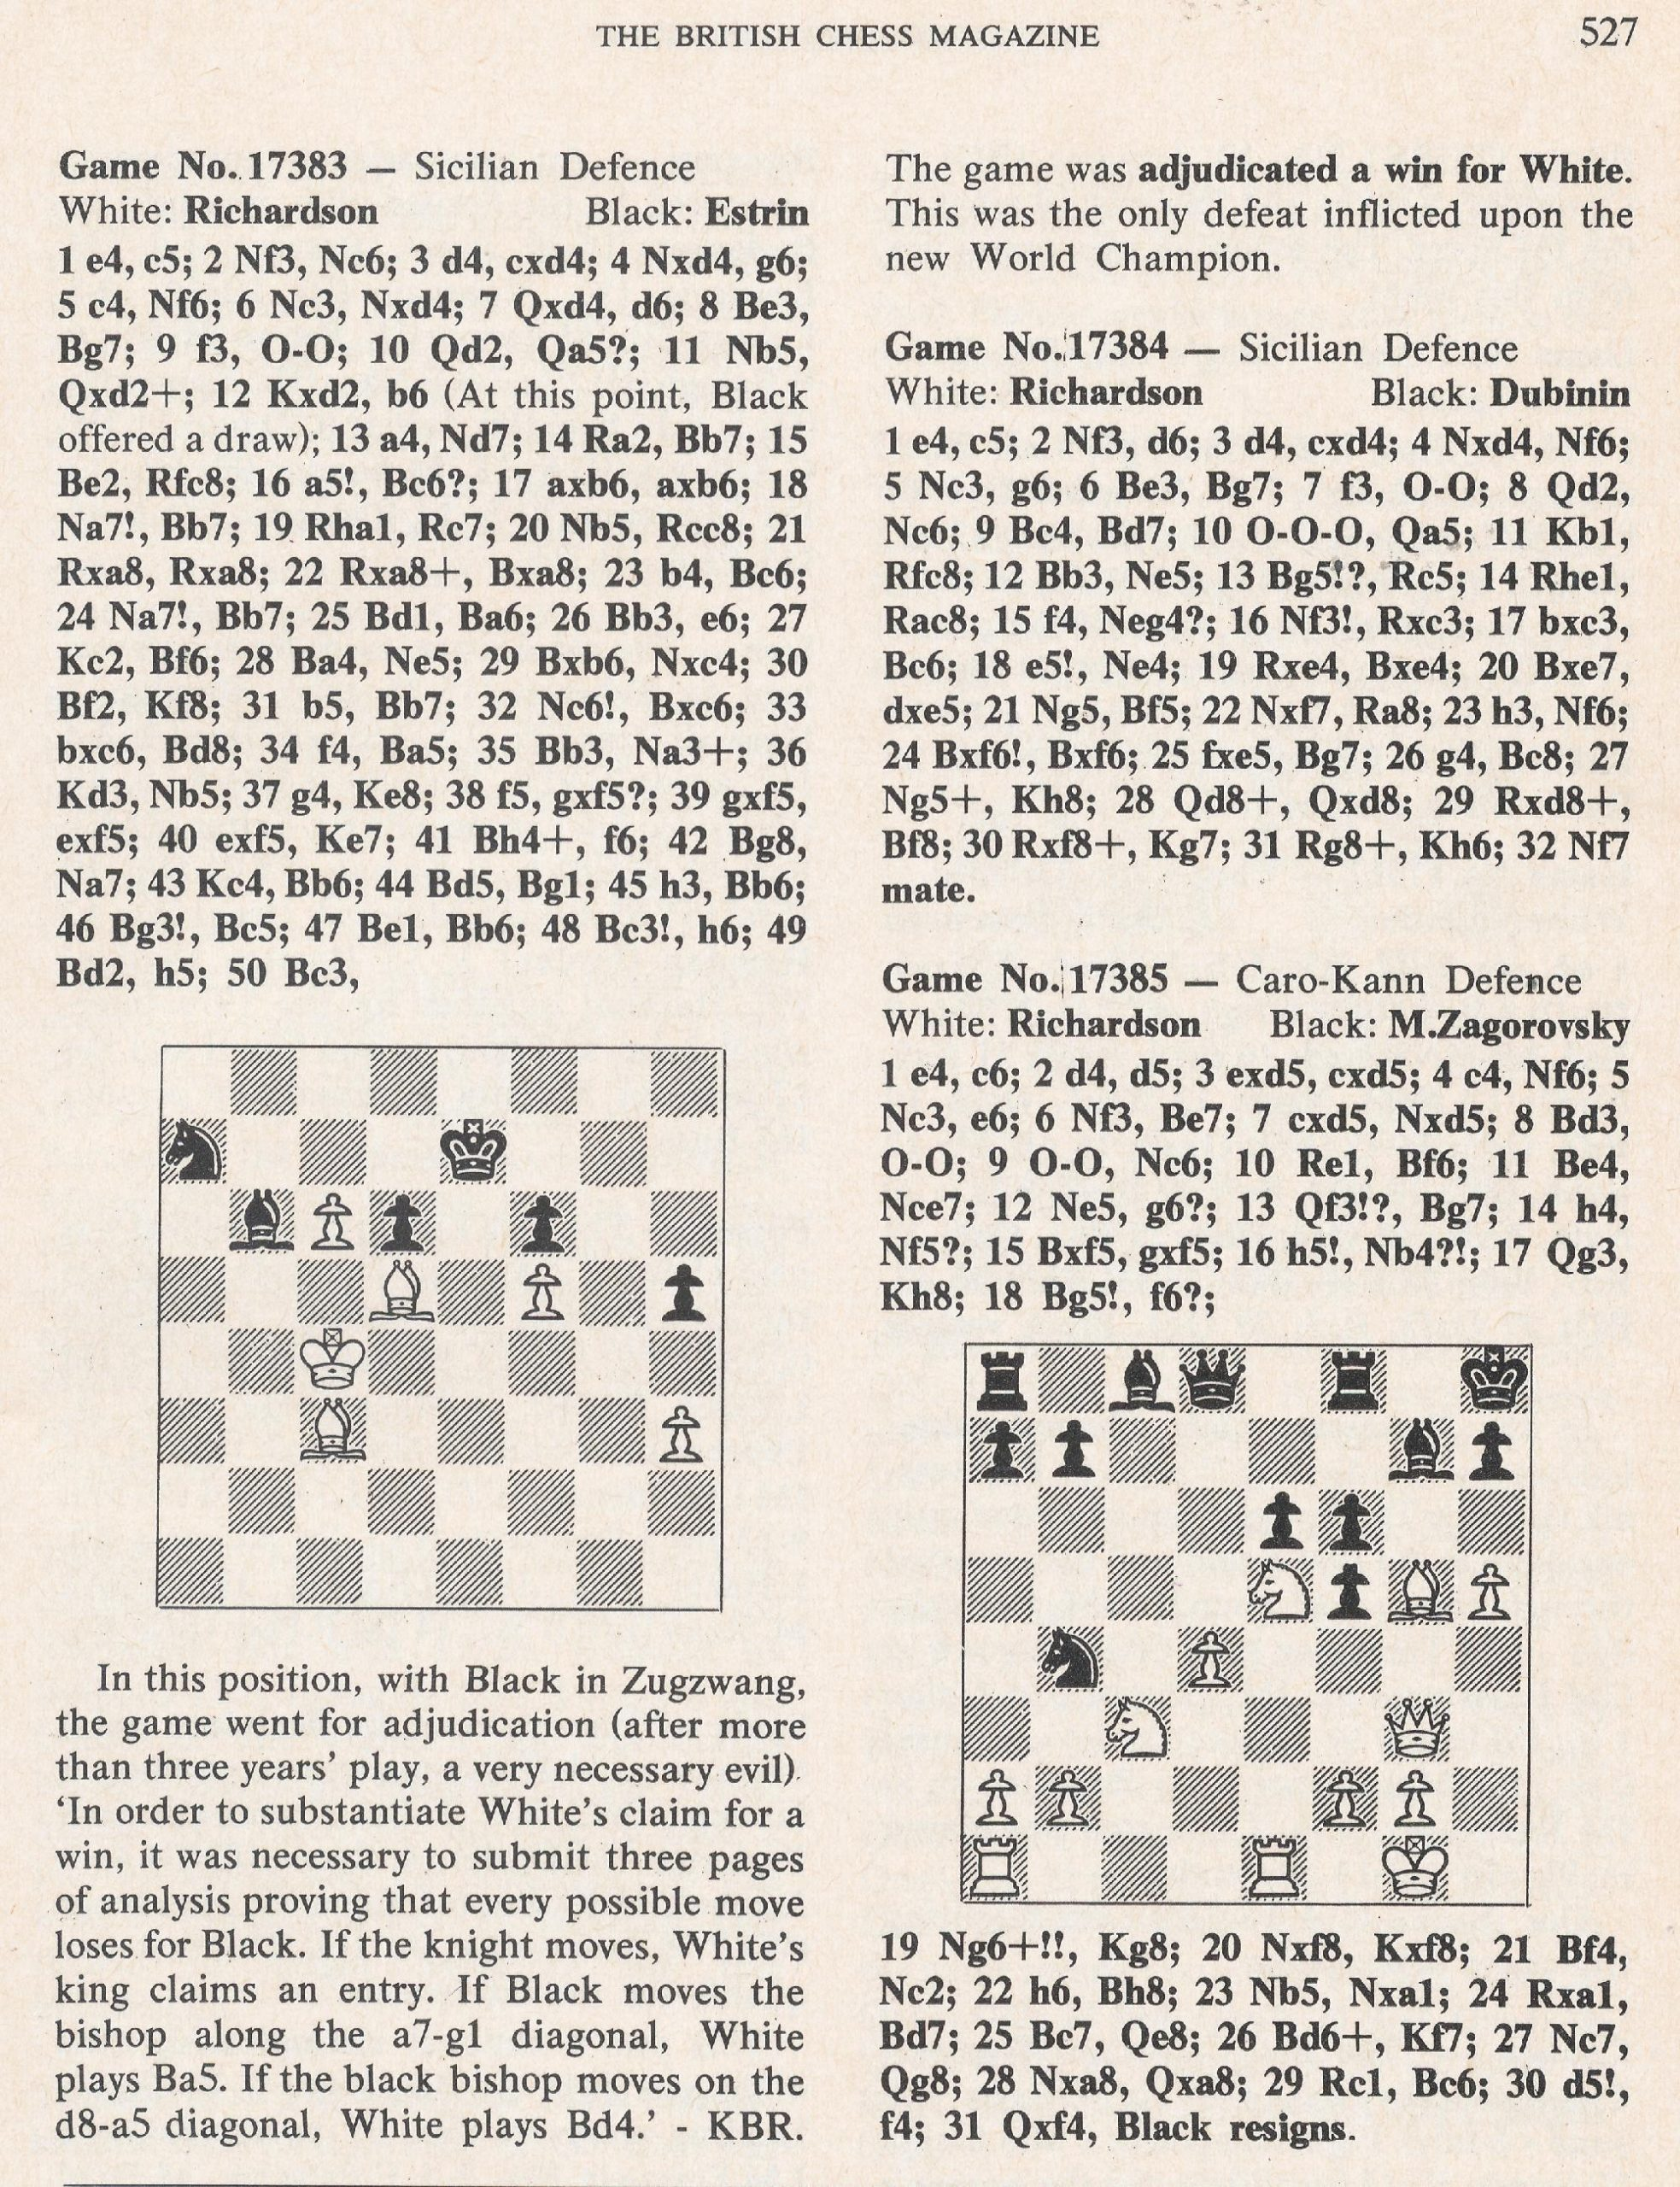 British Chess Magazine, Volume LIXIV (95, 1975), Number 12 (December), page 527